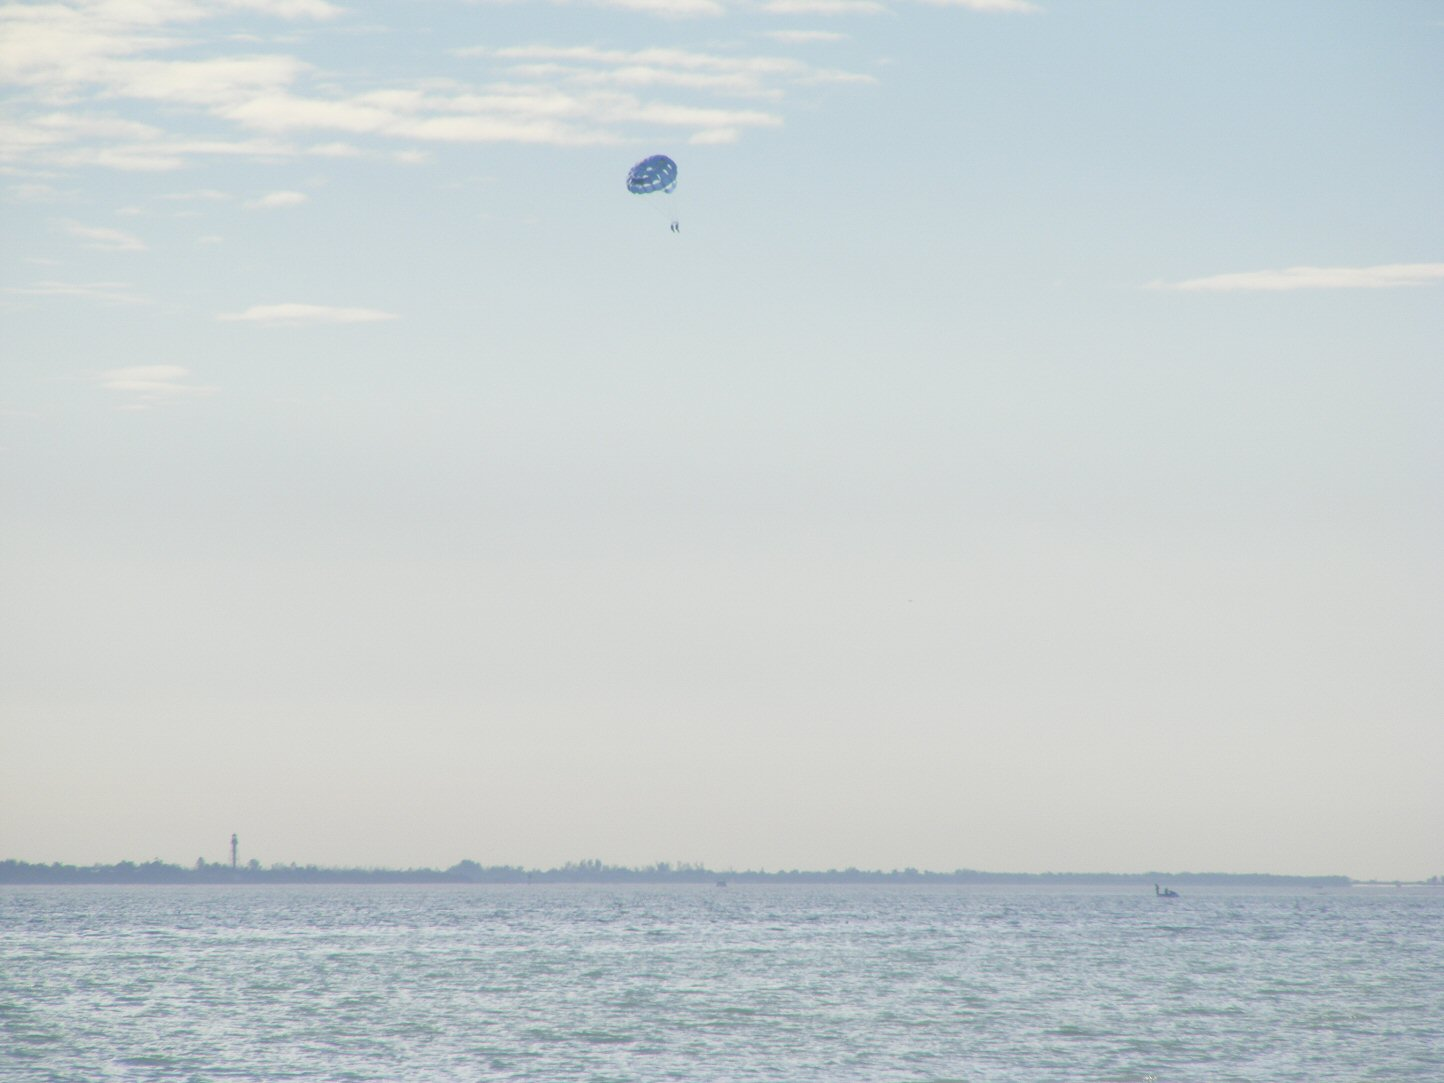 Florida Parachute in Distance